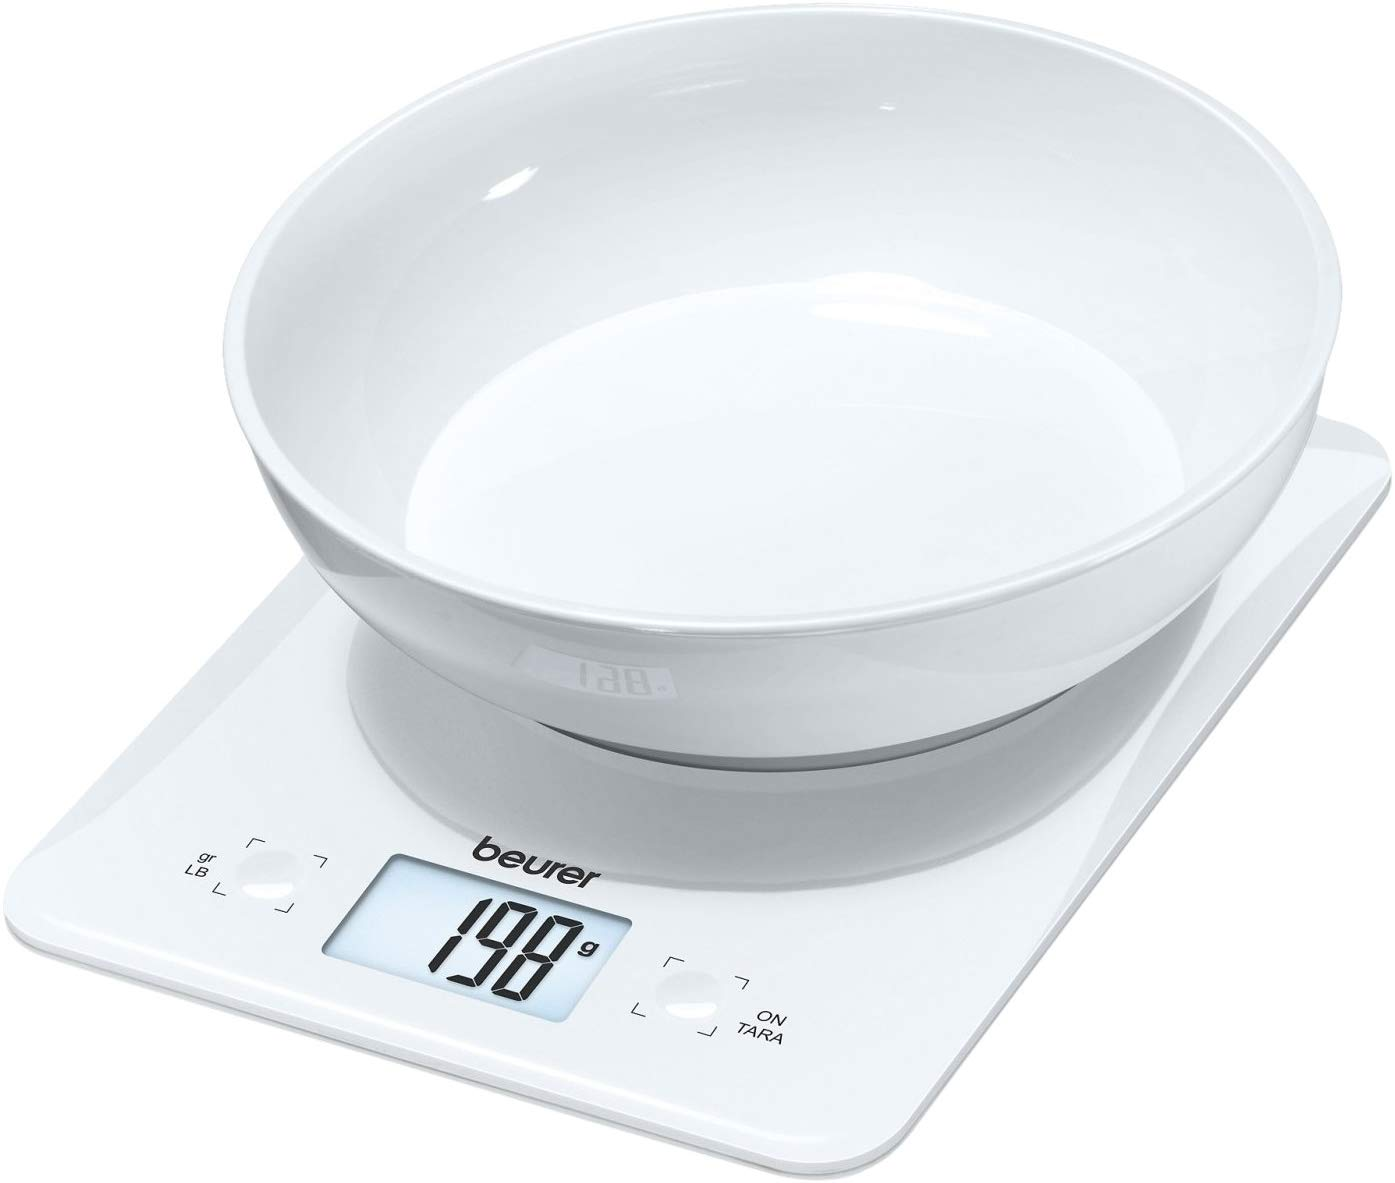 beurer-kitchen-scale-ks-29-kuwait-online